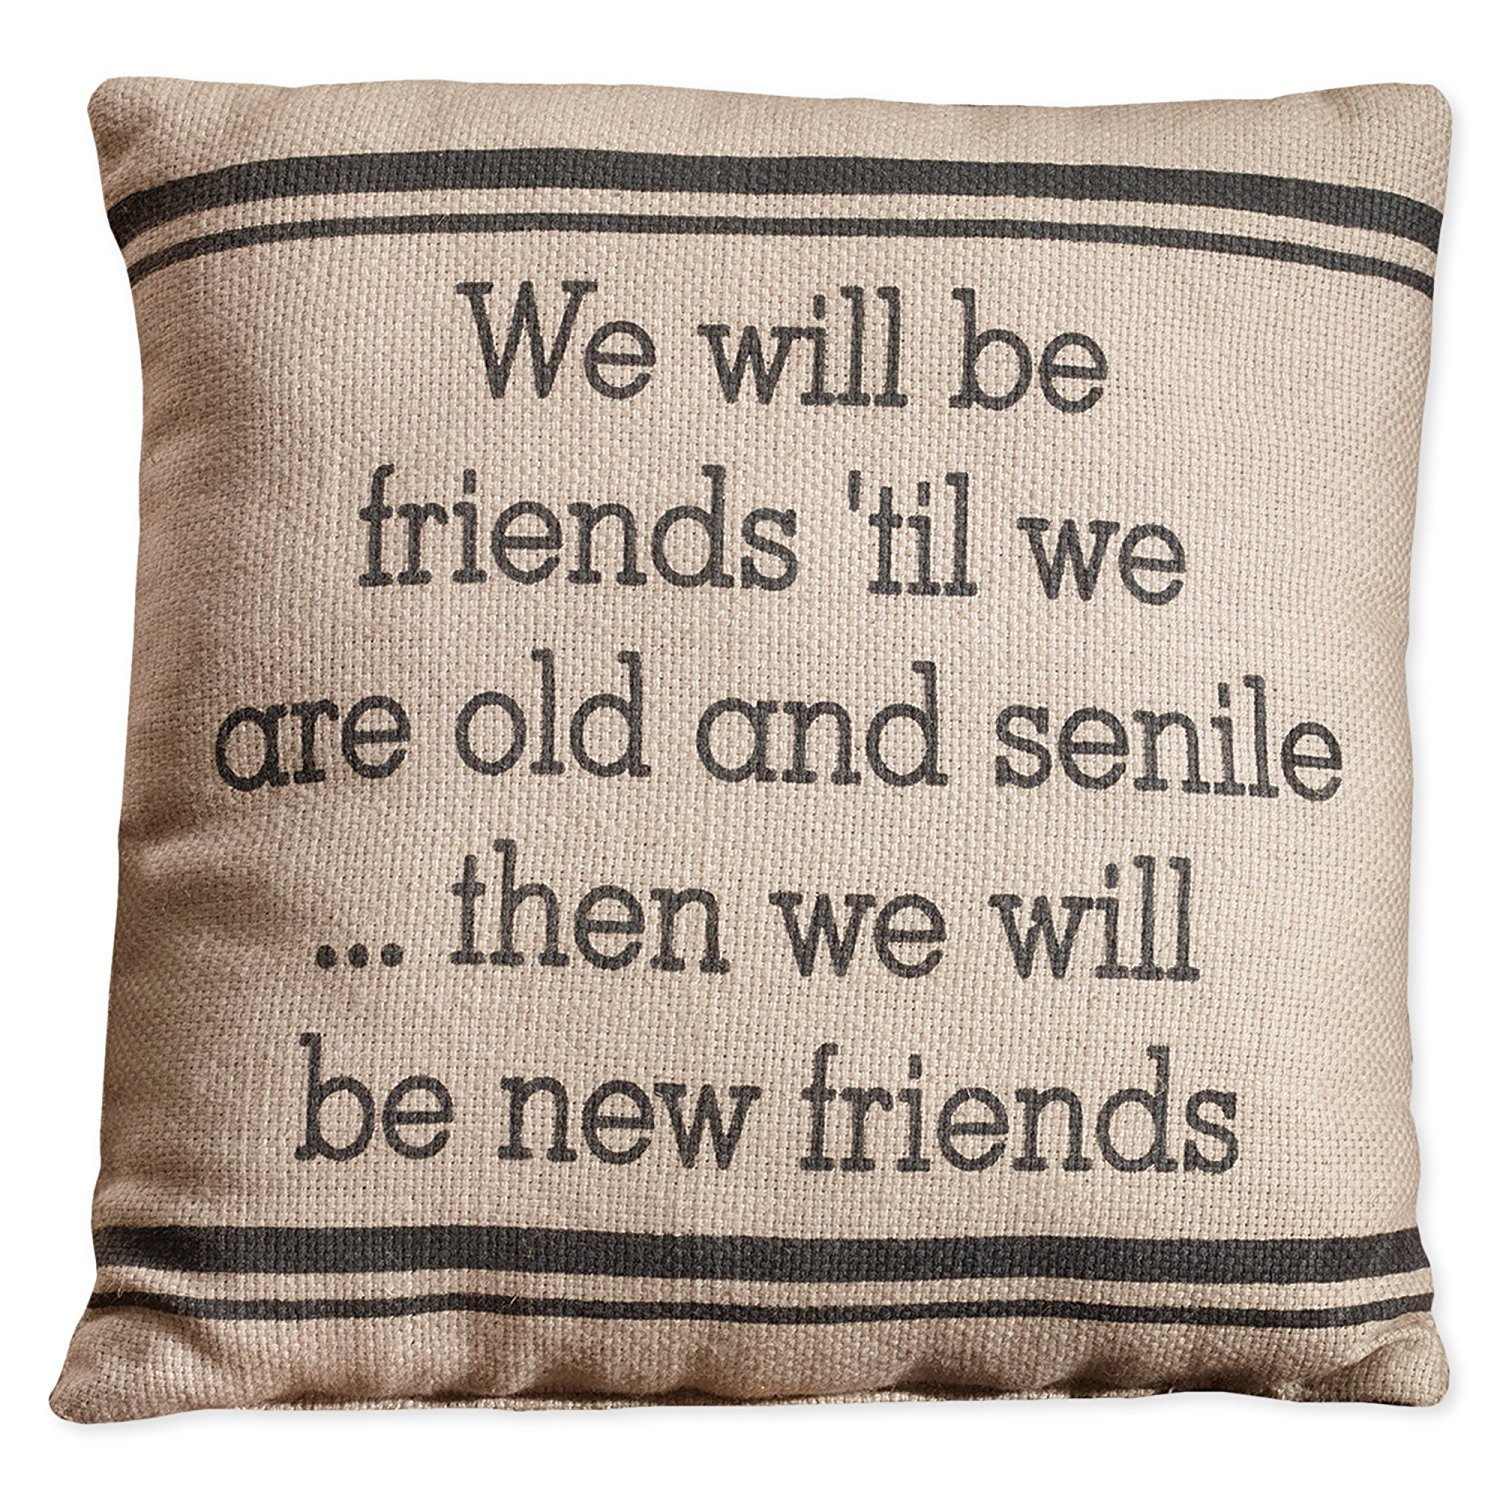 Throw Pillow (Friends 'Til We Are Old)